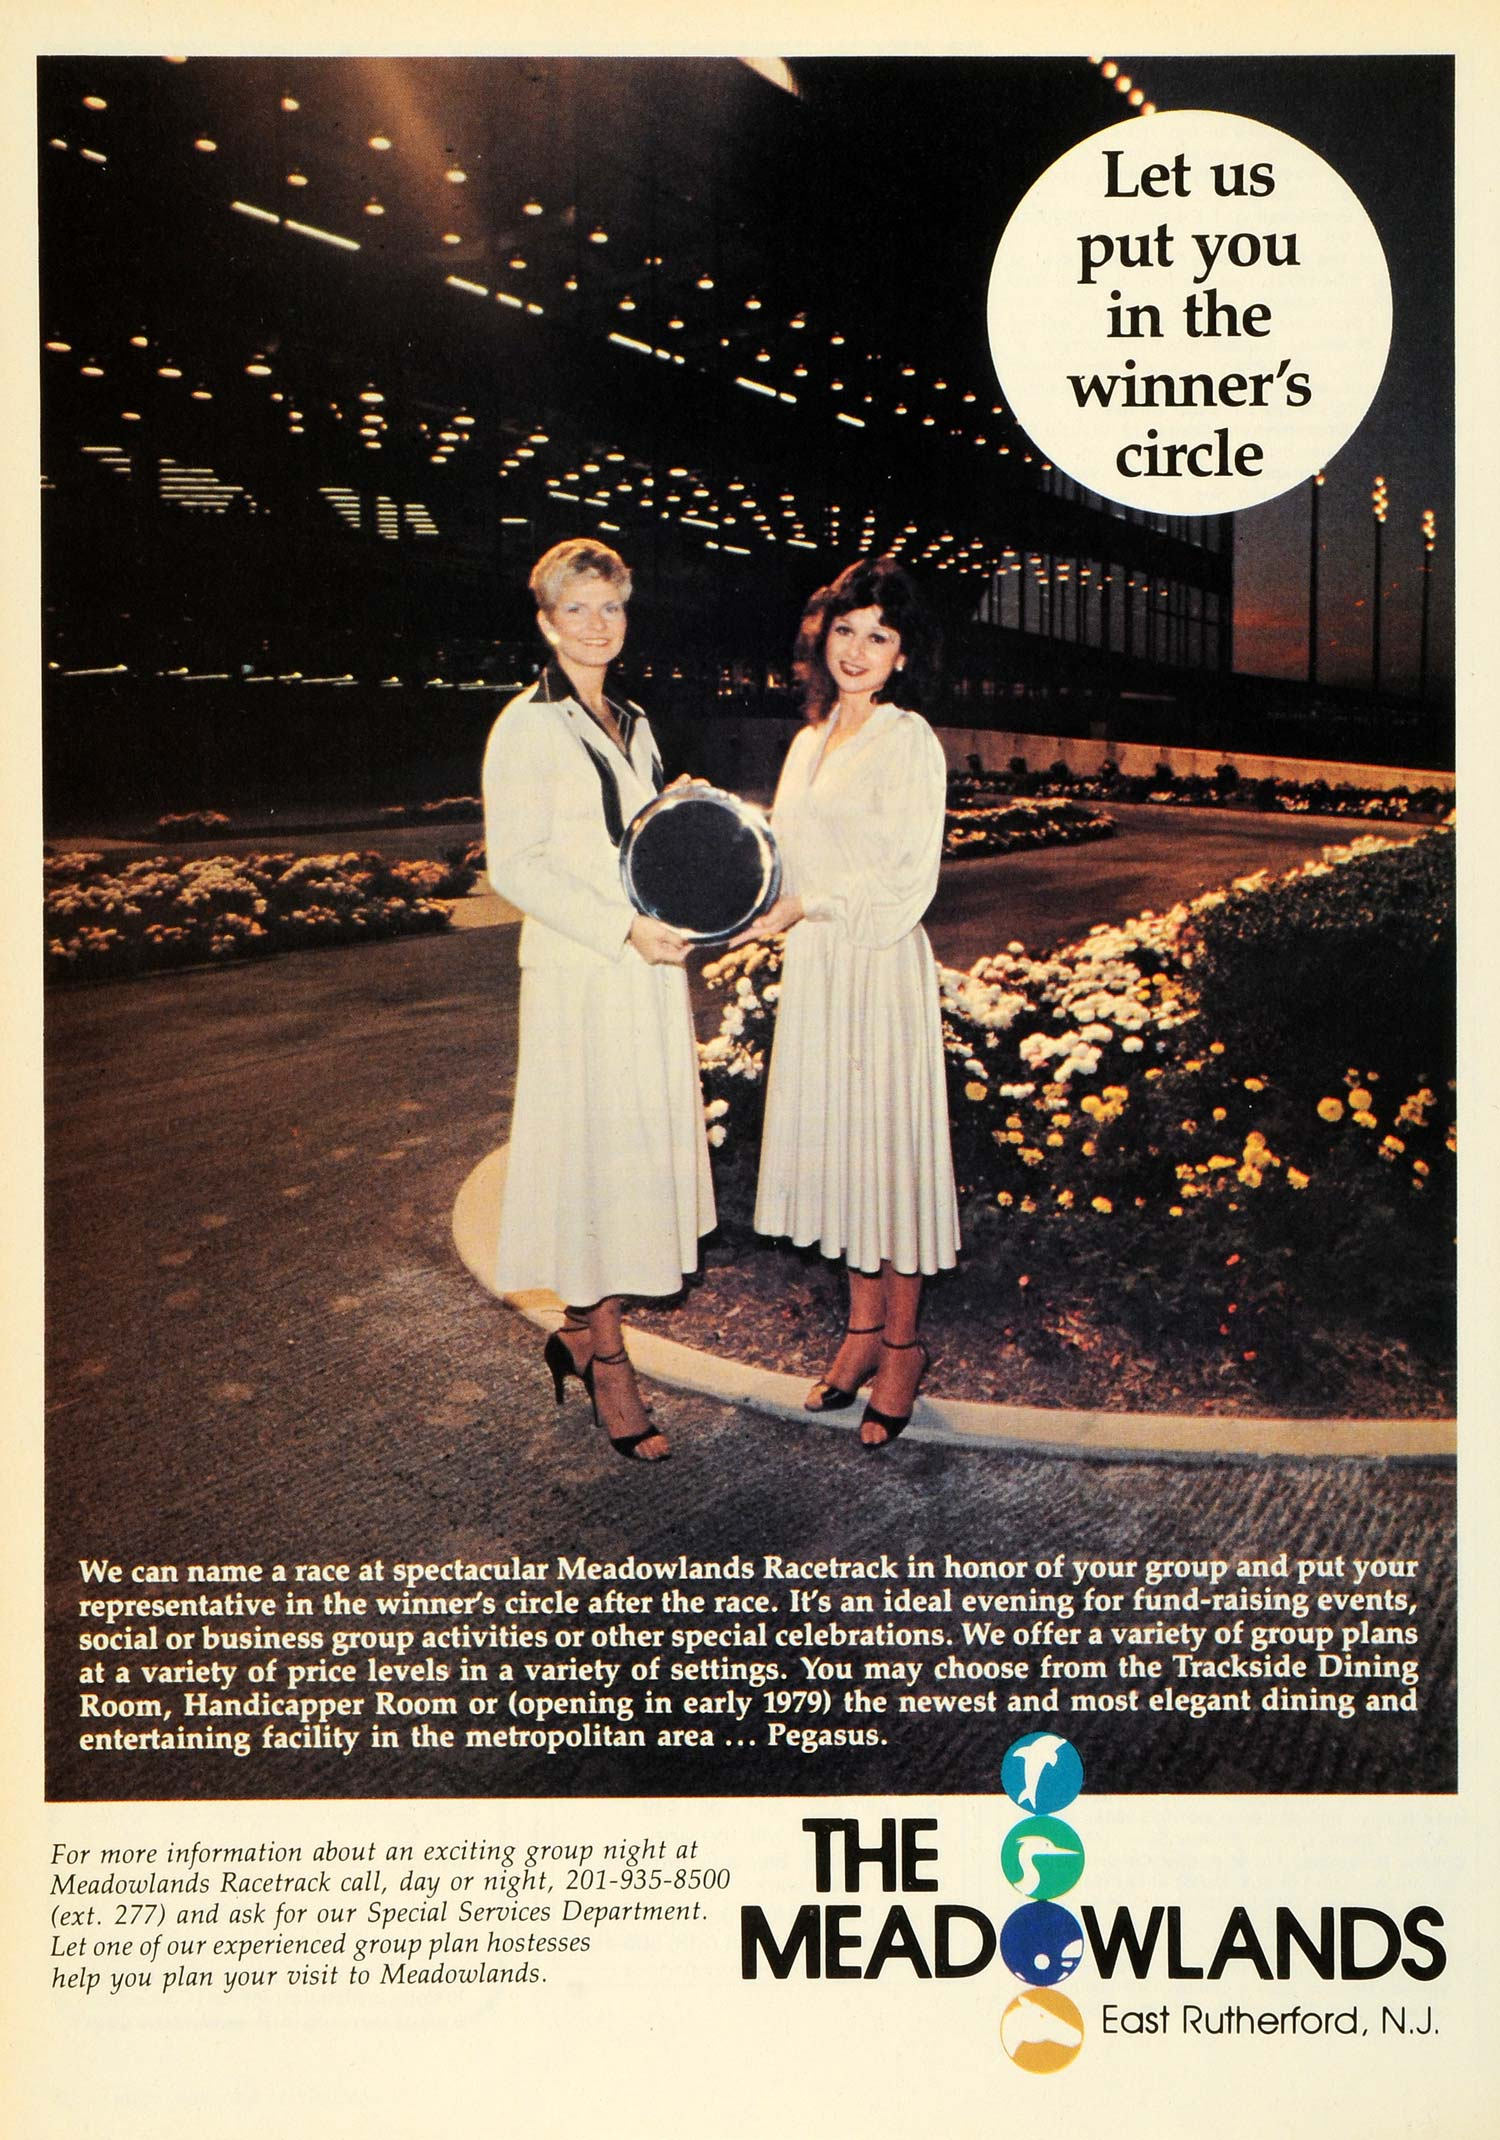 1979 Ad Meadowlands Entertaining Facility Racetrack Winners Circle E NYM1